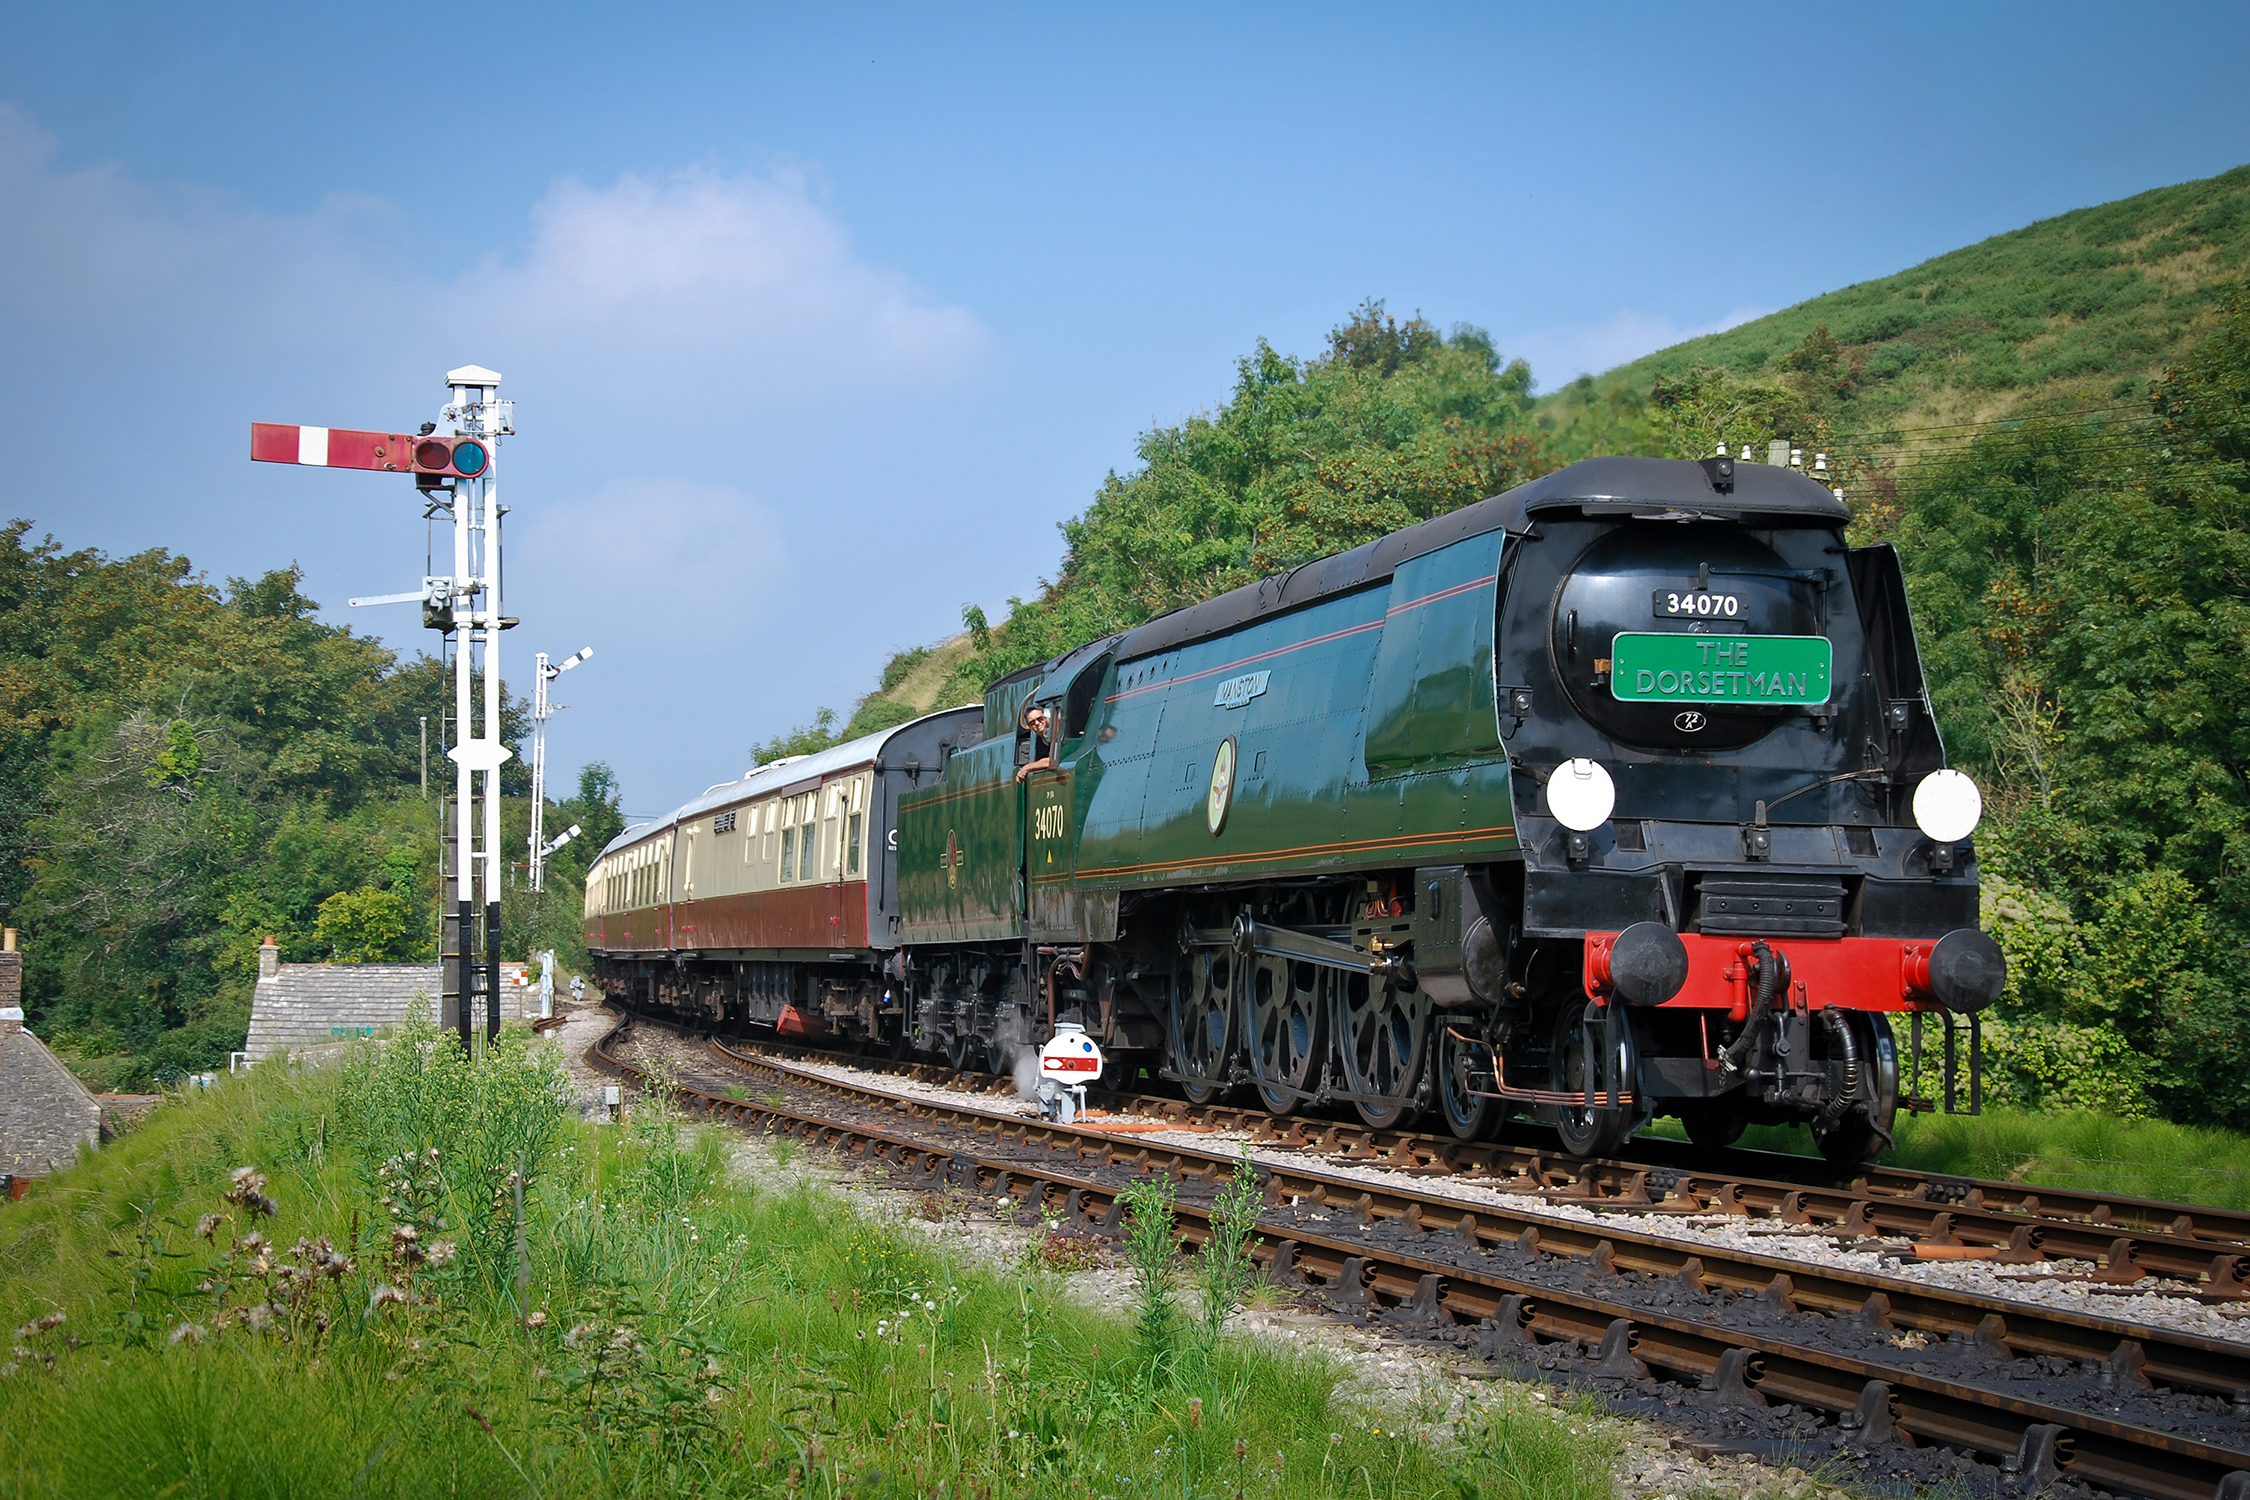 Golden West Homes >> Swanage Railway | Things to do in Dorset | West Dorset Leisure Holidays